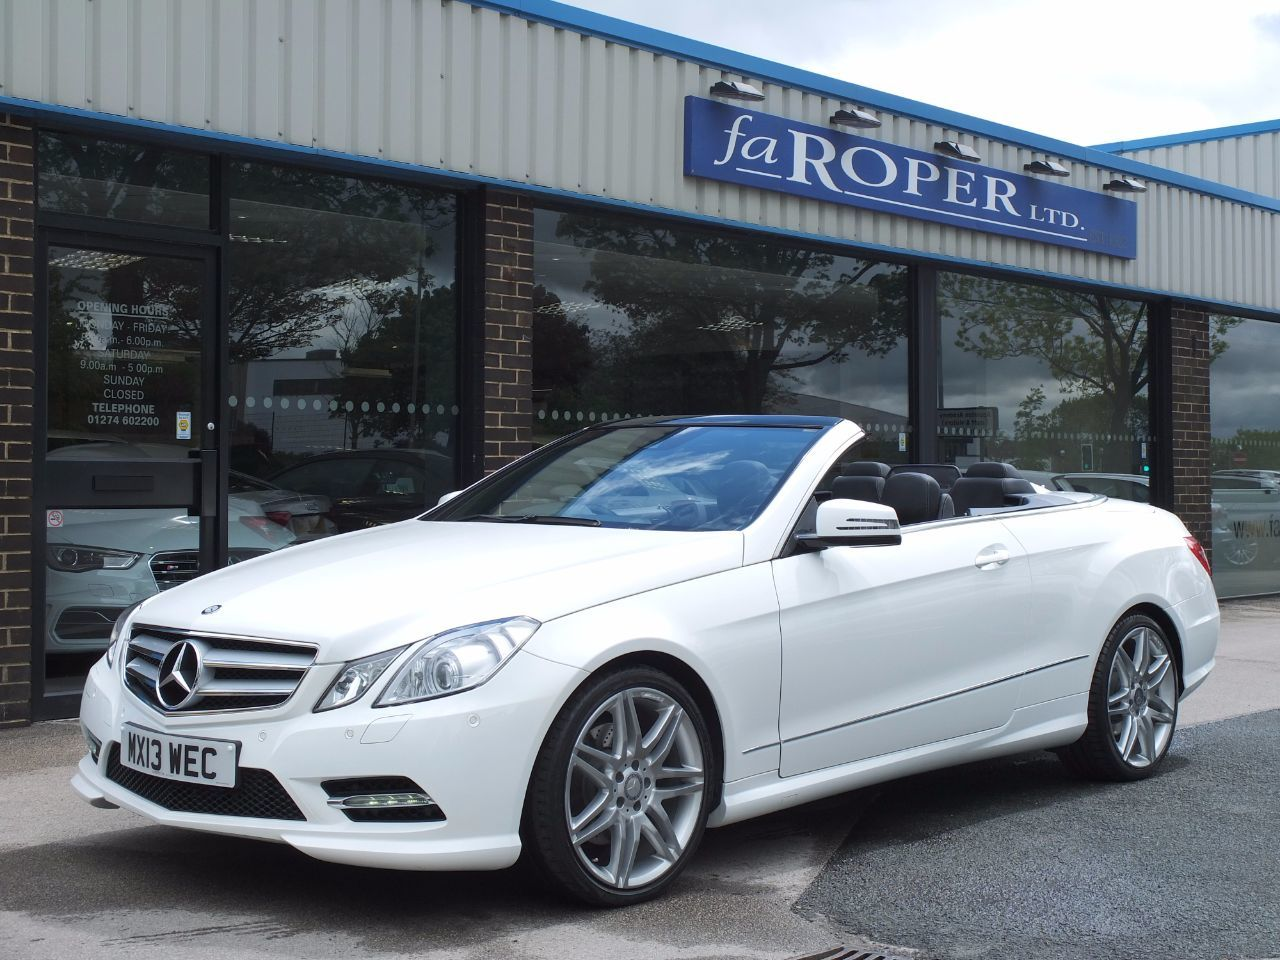 Mercedes-Benz E Class 3.0 E350 CDI BlueEFFICIENCY [265] Sport Convertible Auto +++Spec Convertible Diesel Polar WhiteMercedes-Benz E Class 3.0 E350 CDI BlueEFFICIENCY [265] Sport Convertible Auto +++Spec Convertible Diesel Polar White at fa Roper Ltd Bradford